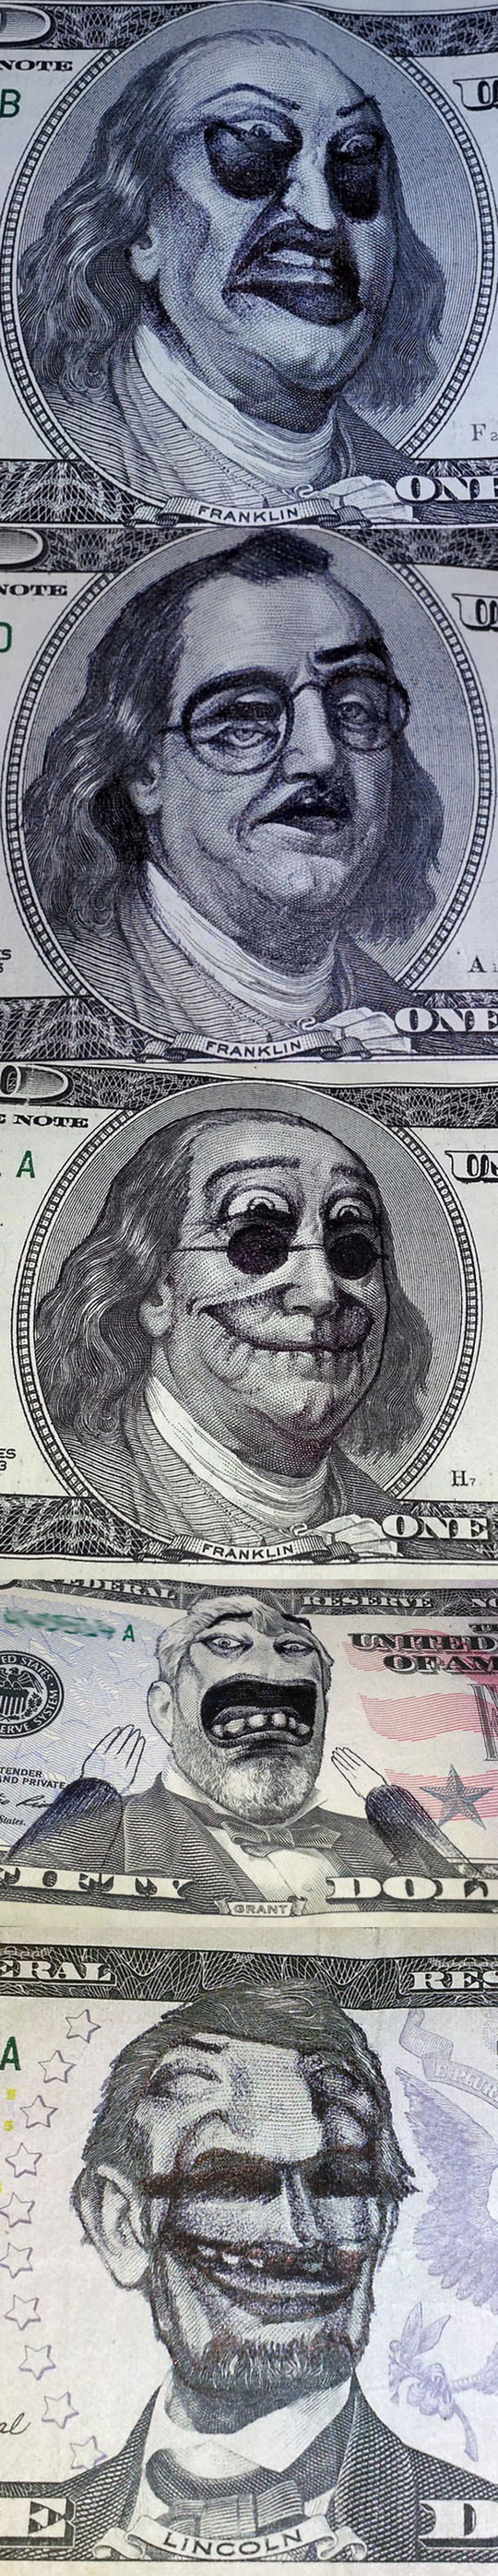 funny-bill-faces-painted-bored-Franklin